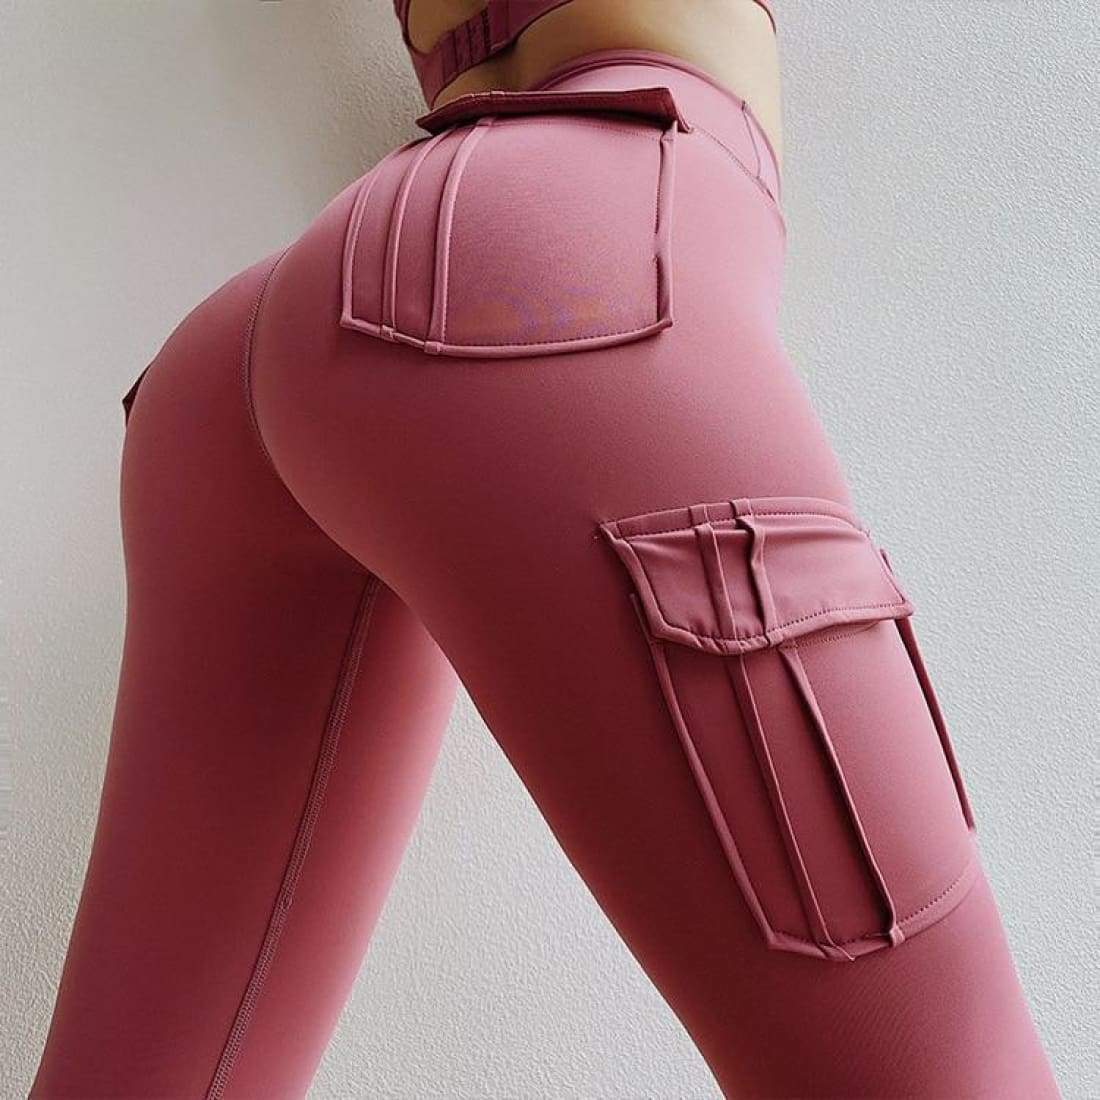 Sculpt cargo leggings - S / Pink - high waist pockets yoga sport workout running